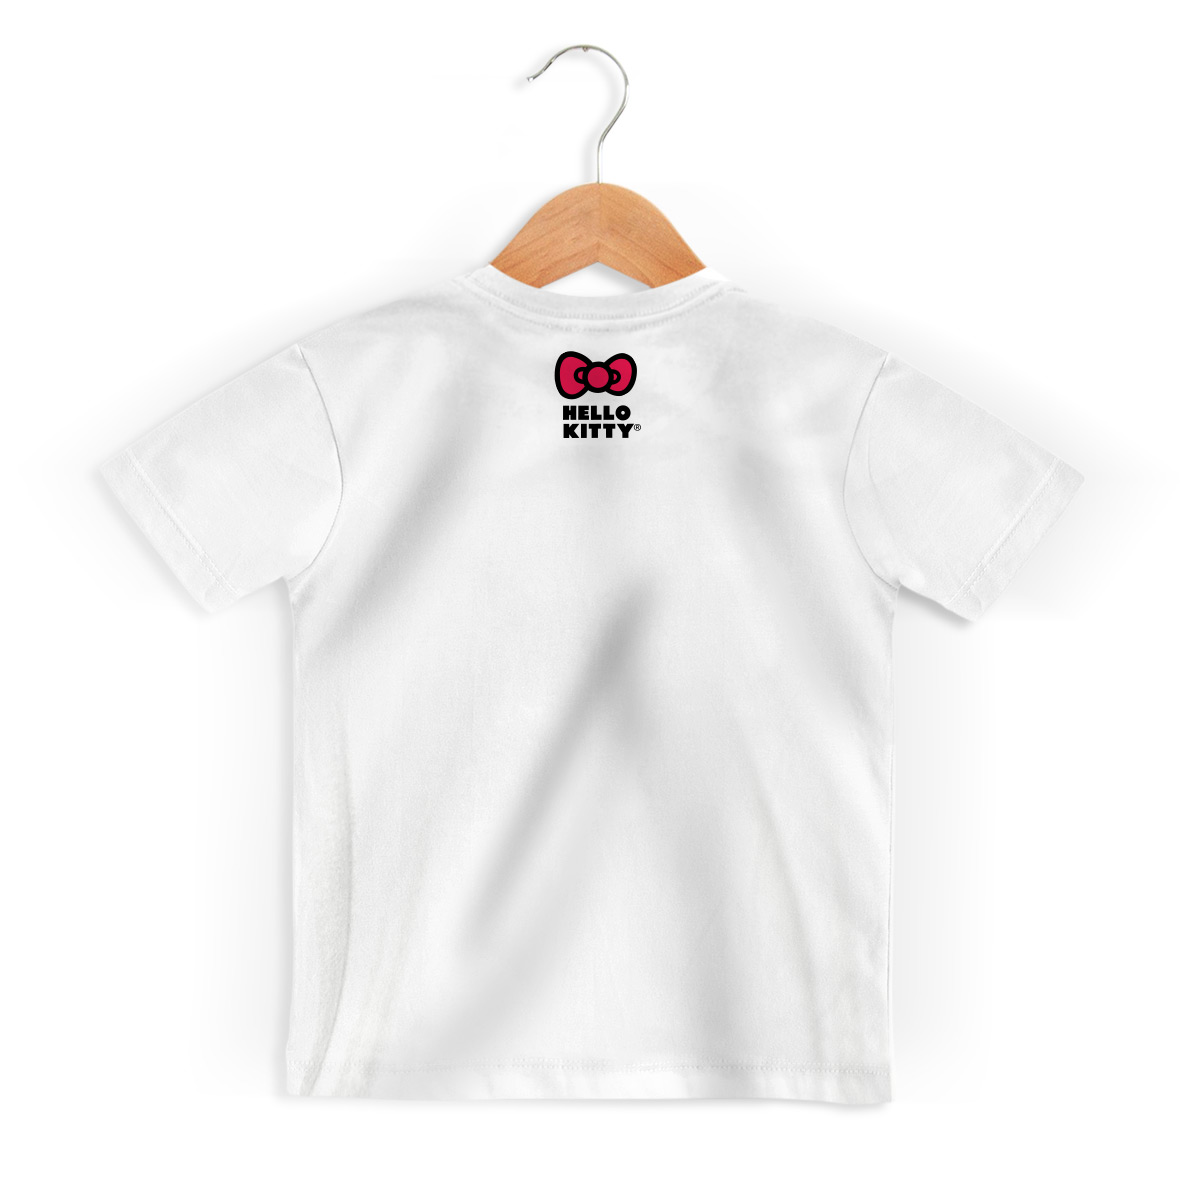 Camiseta Infantil Hello Kitty Standard